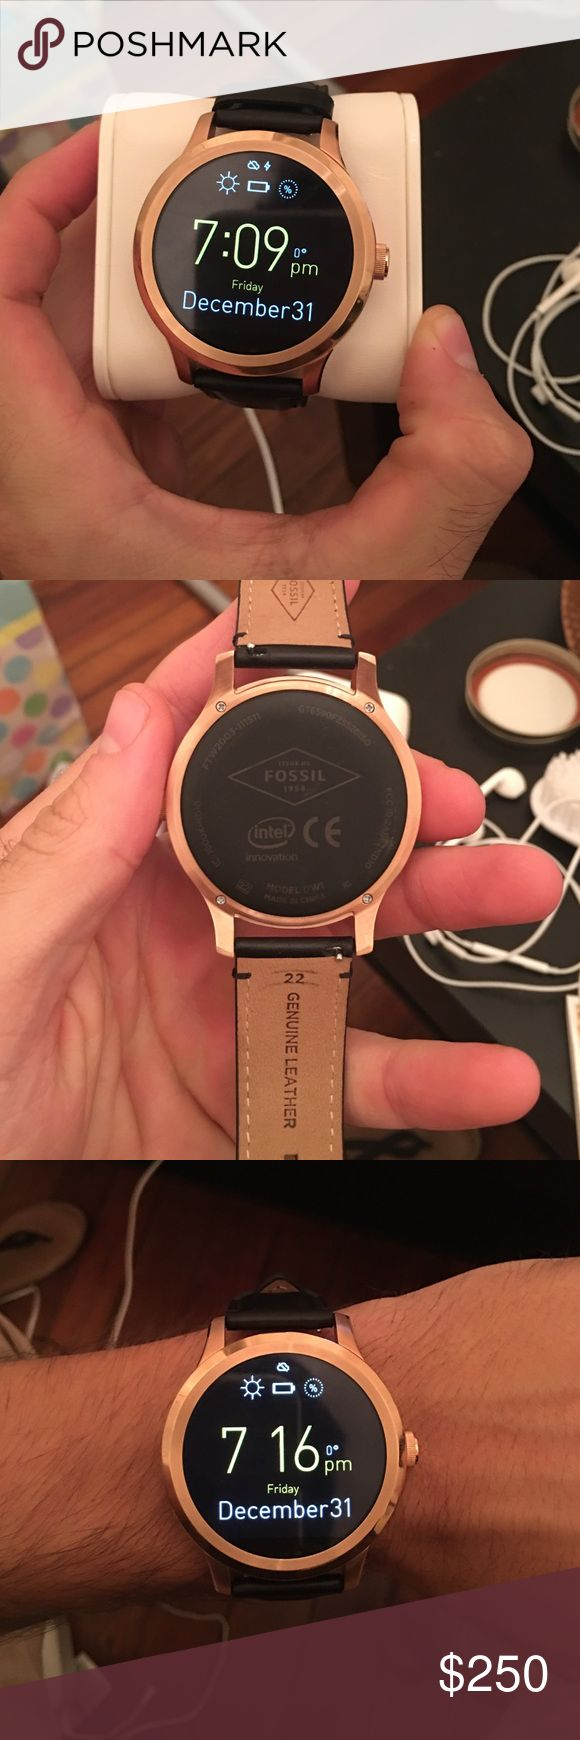 Fossil Q Founder Smart watch that connects to phone. Counts steps, shows text messages, and more features. Worn once, like new condition. No box included. Set up is easy. Comes with charging station Fossil Accessories Watches